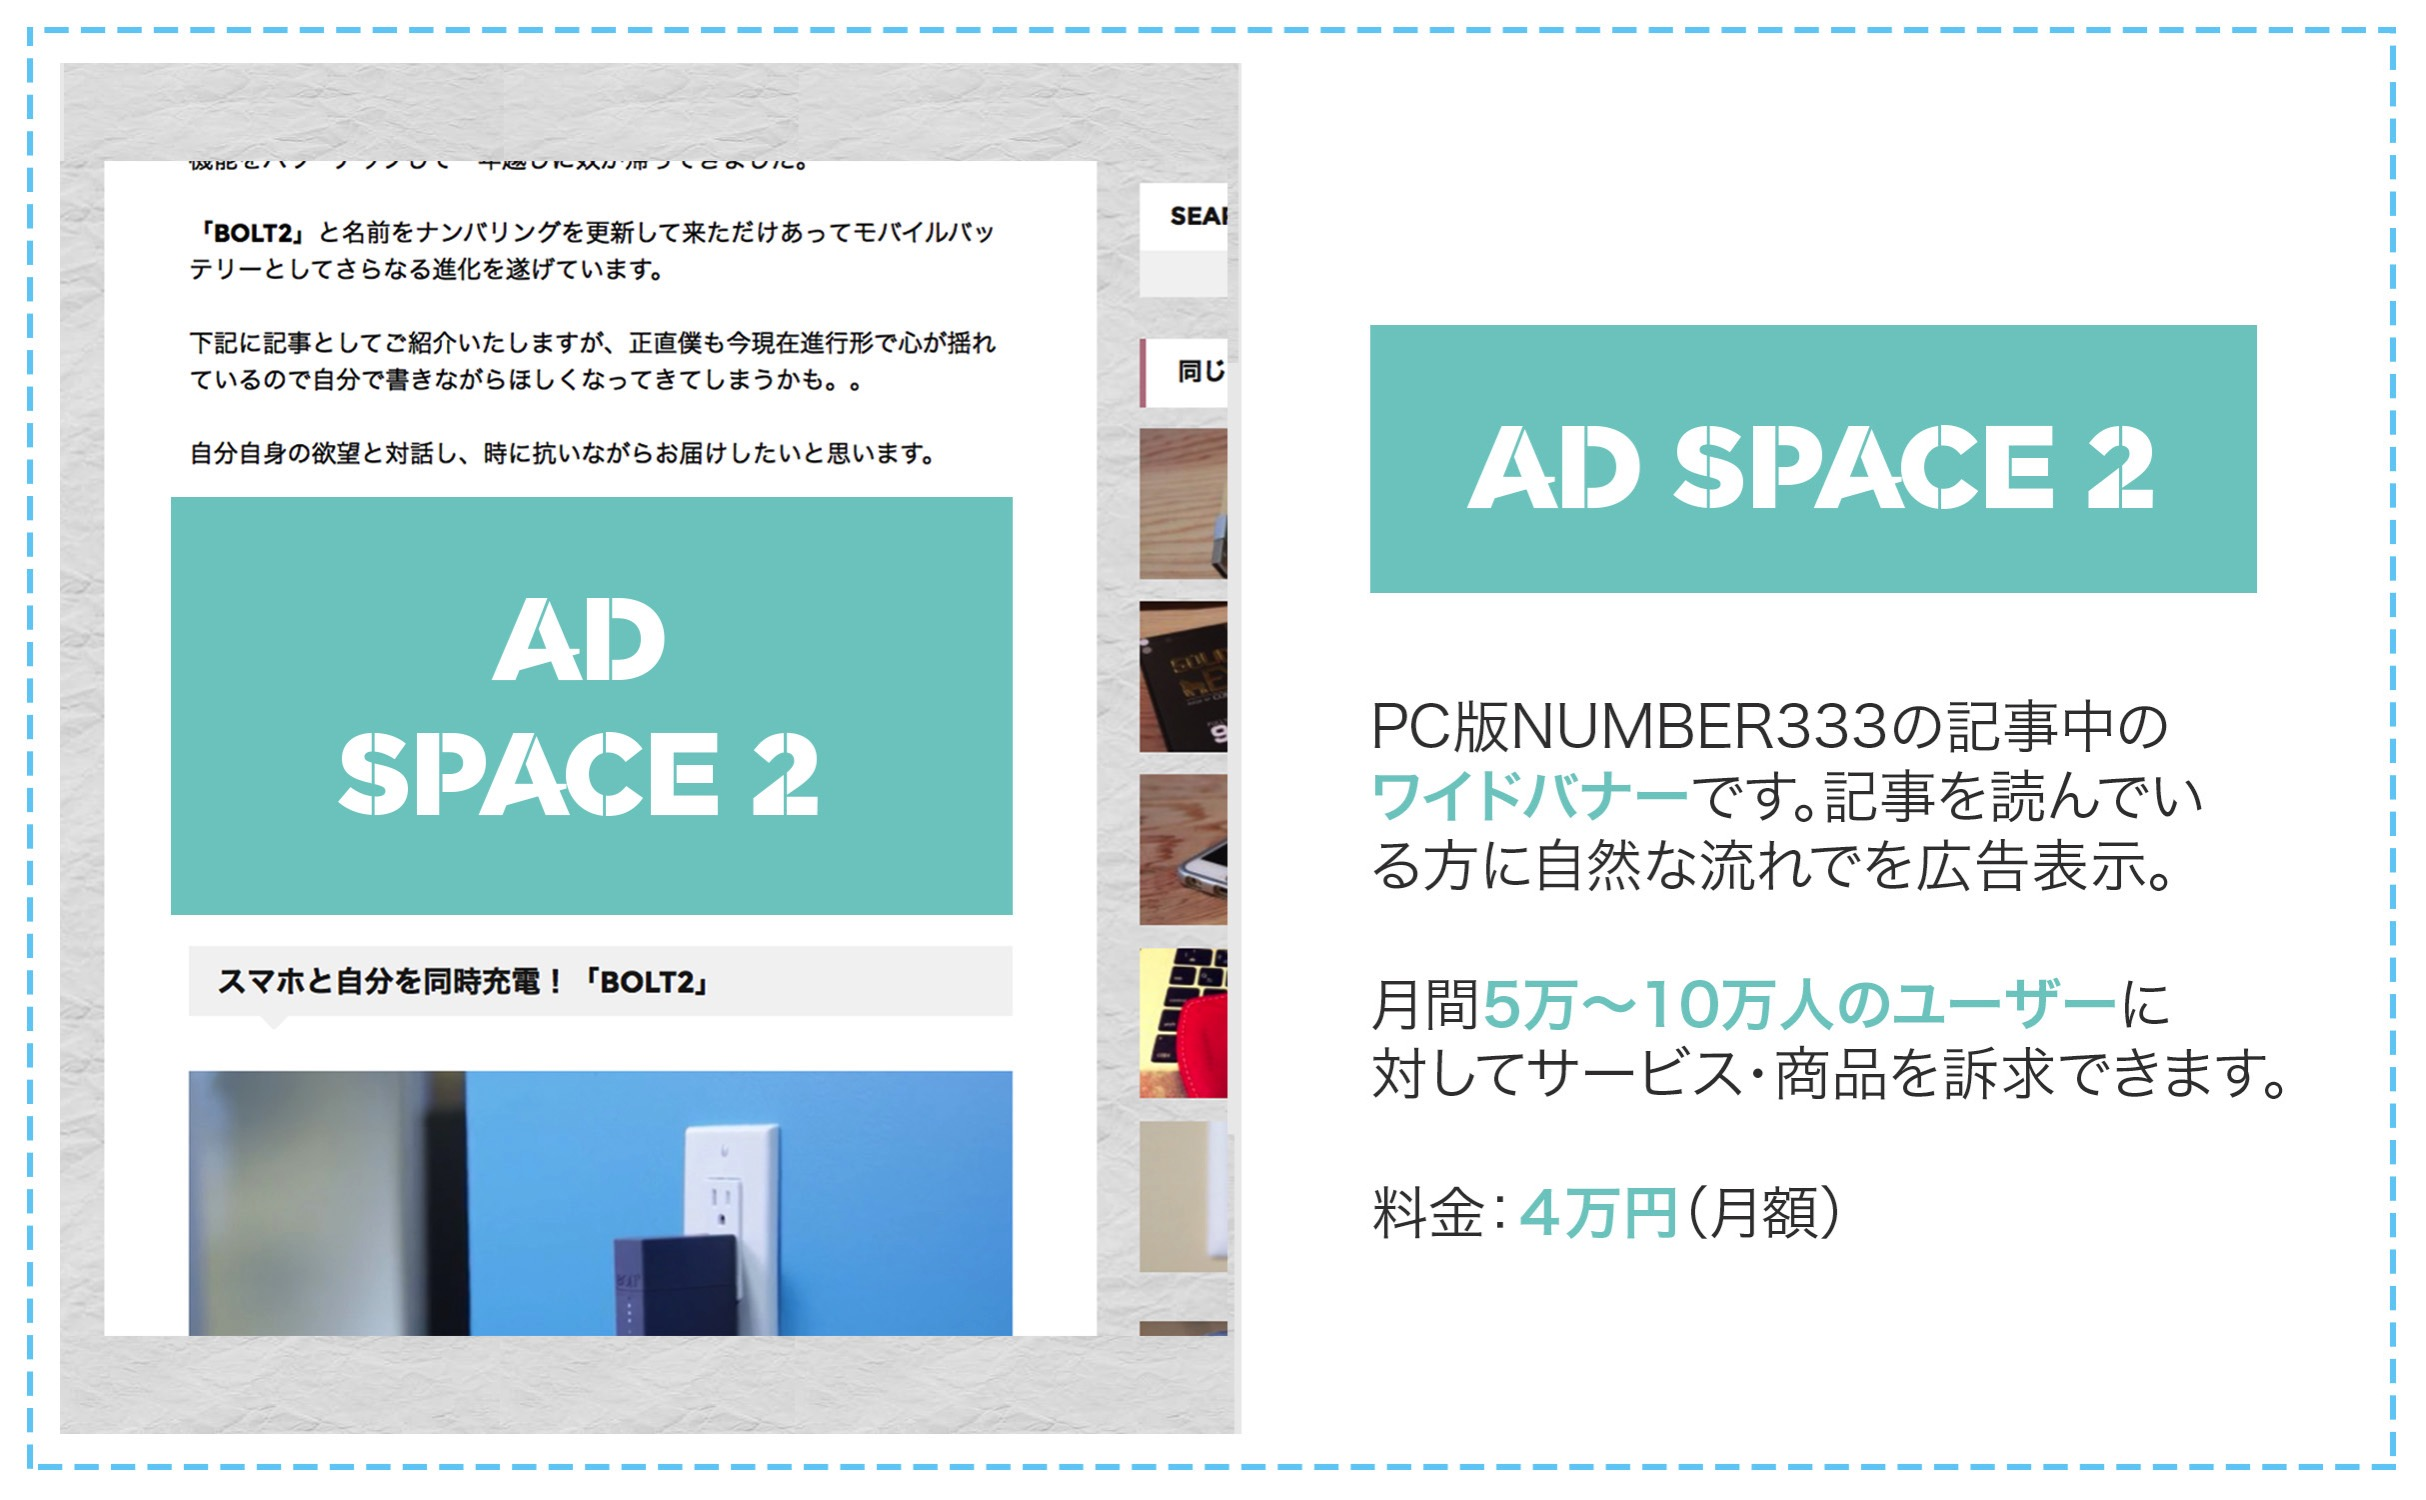 Adspace2